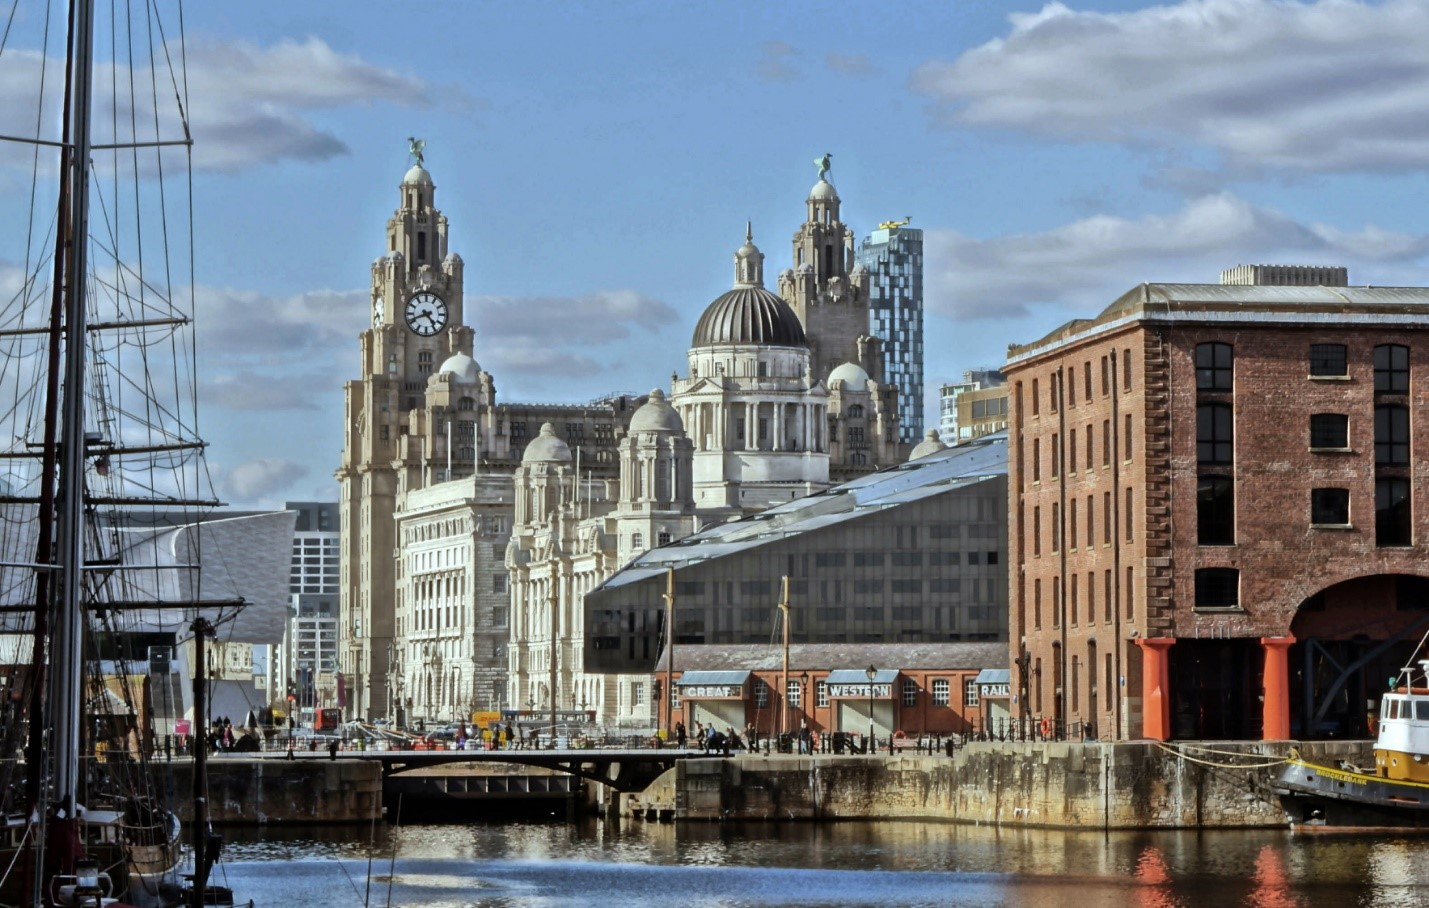 Regional cities such as Liverpool (pictured) offer the most value for investors over the short-to-medium term